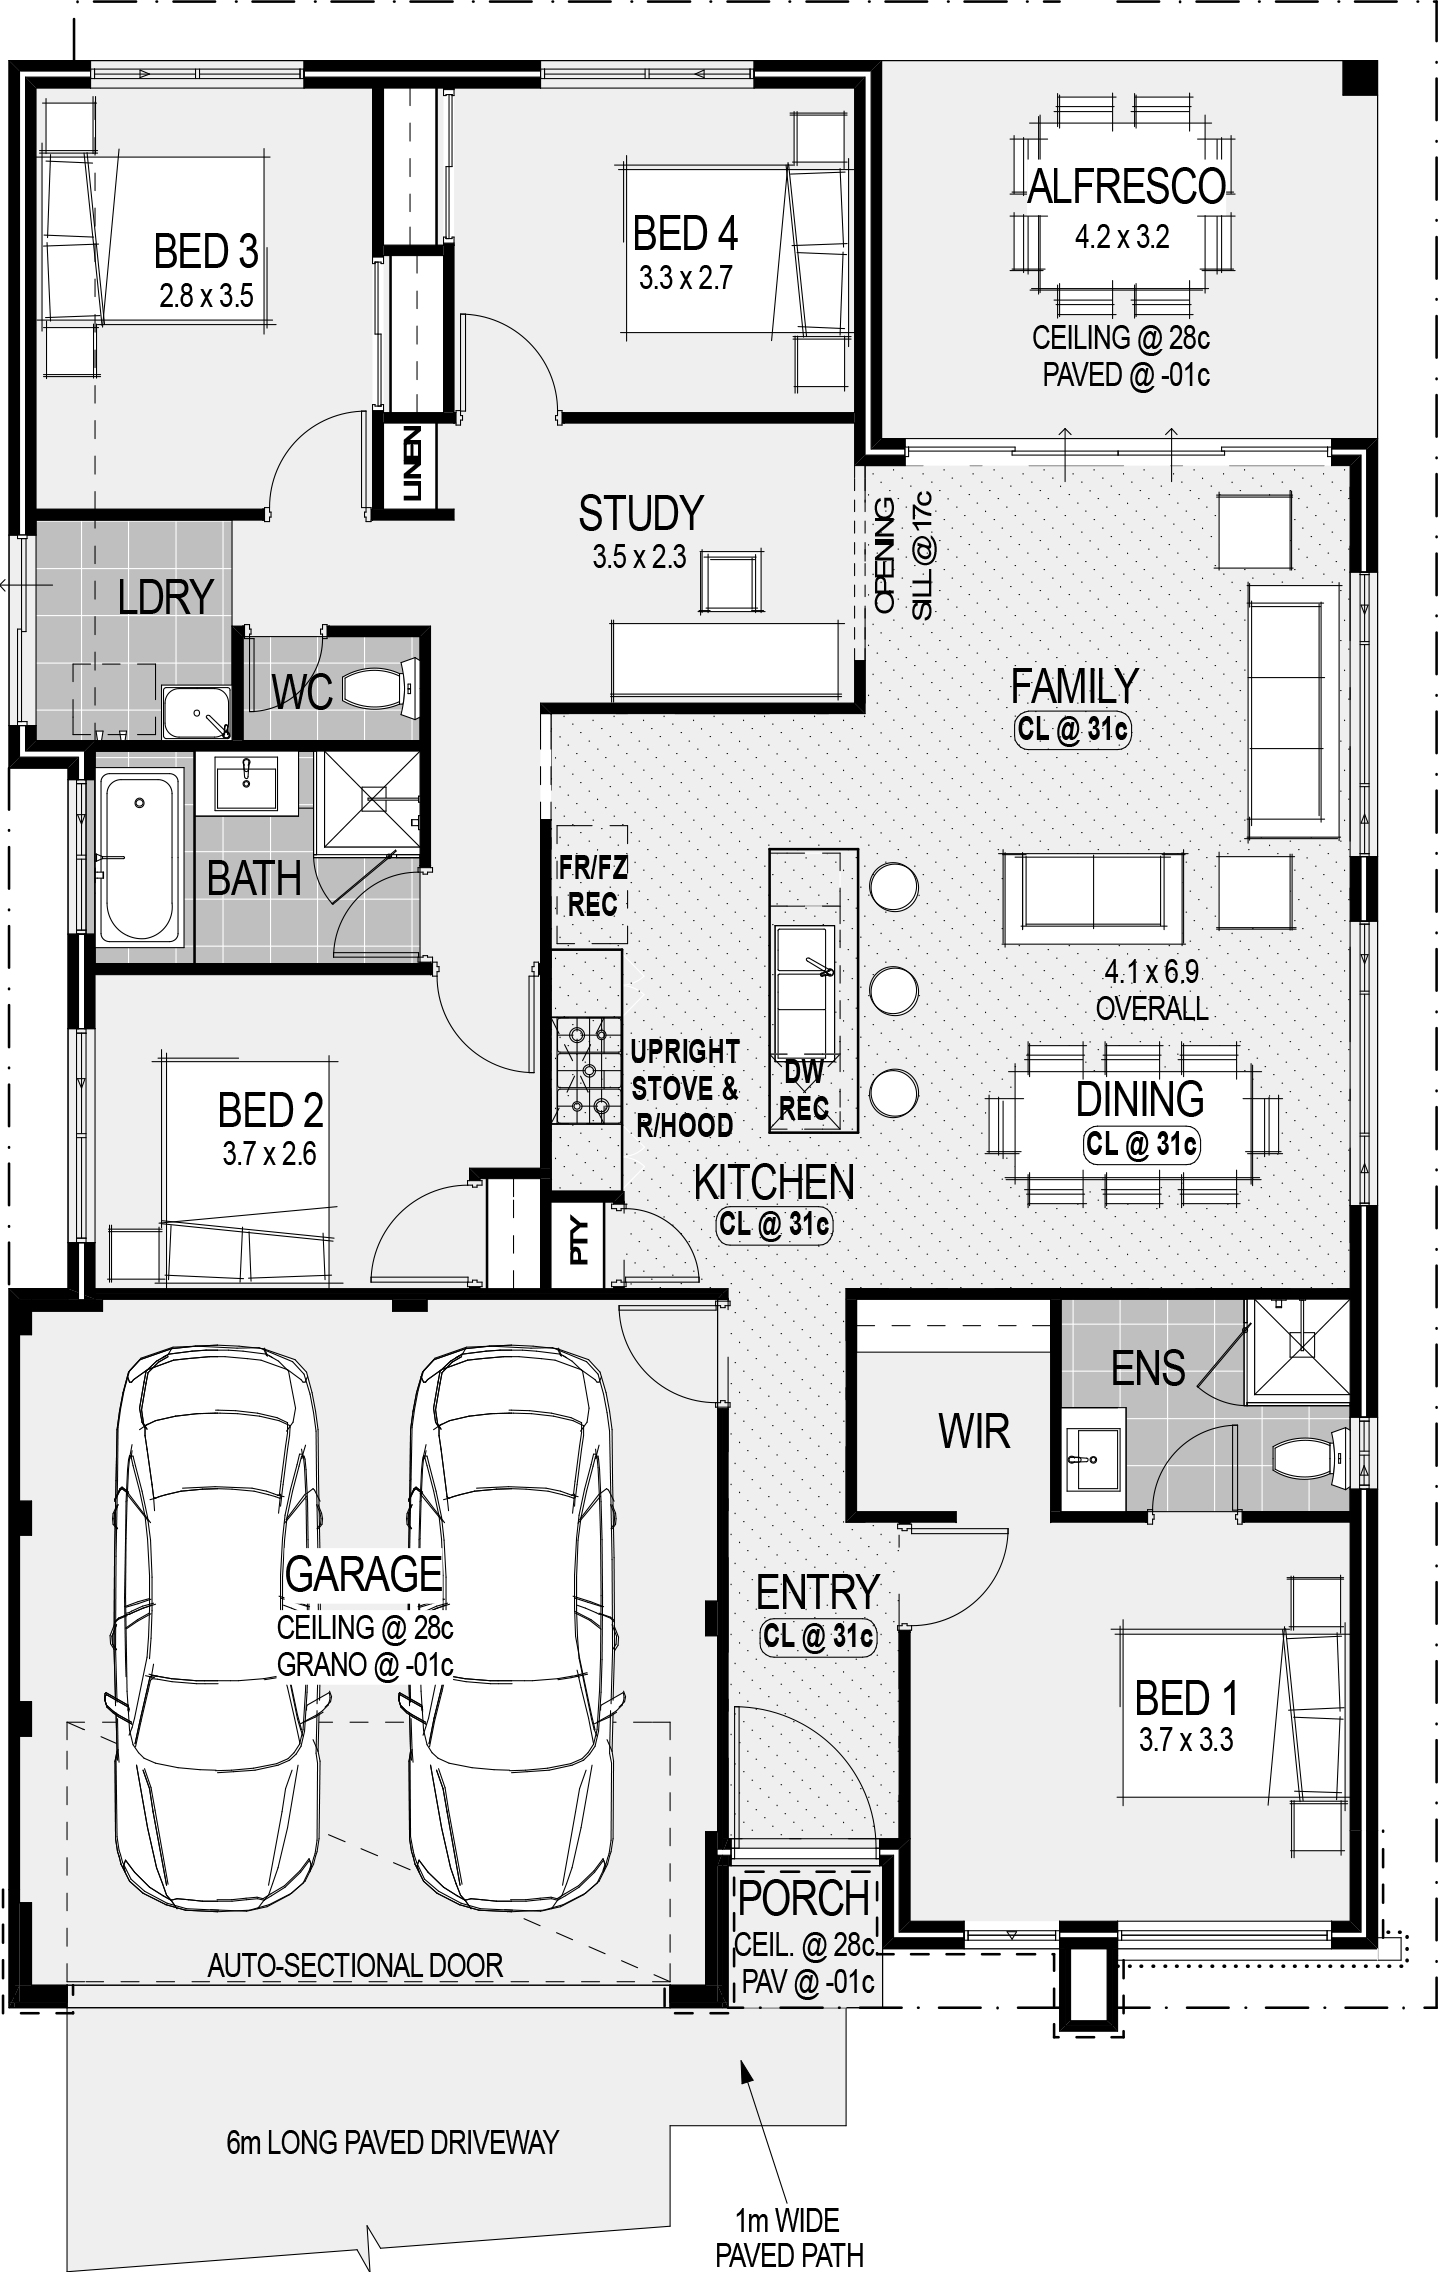 Savona Classico Mk2 Special Floorplan House Design Home Design Floor Plans House Plans